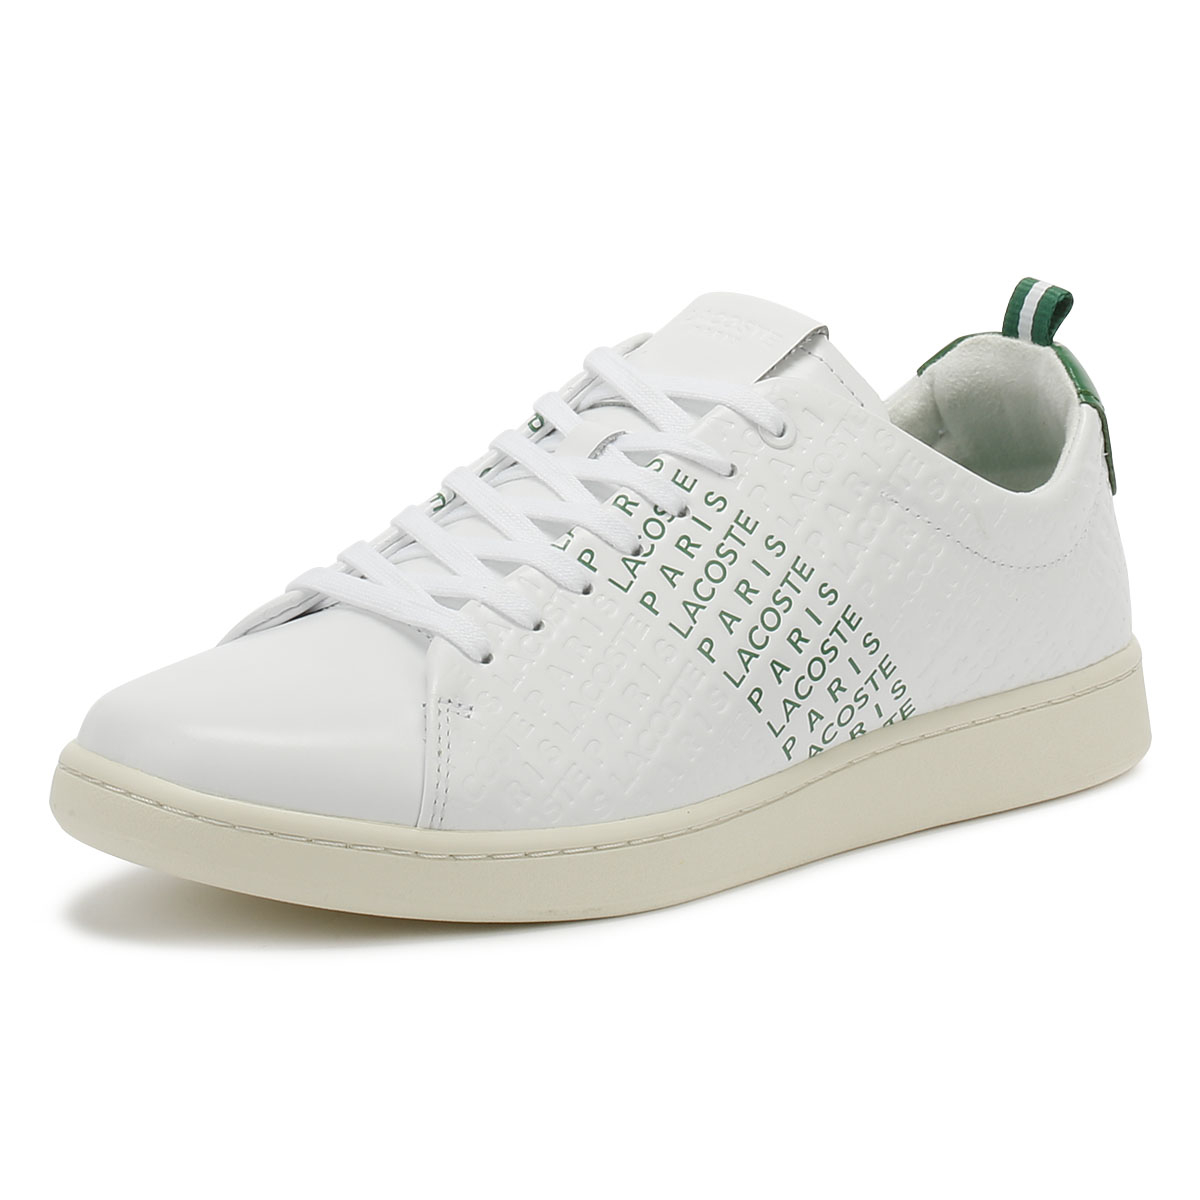 2d556f41f486 Lacoste Carnaby EVO 119 9 Mens White   Green Trainers Sport Casual Shoes